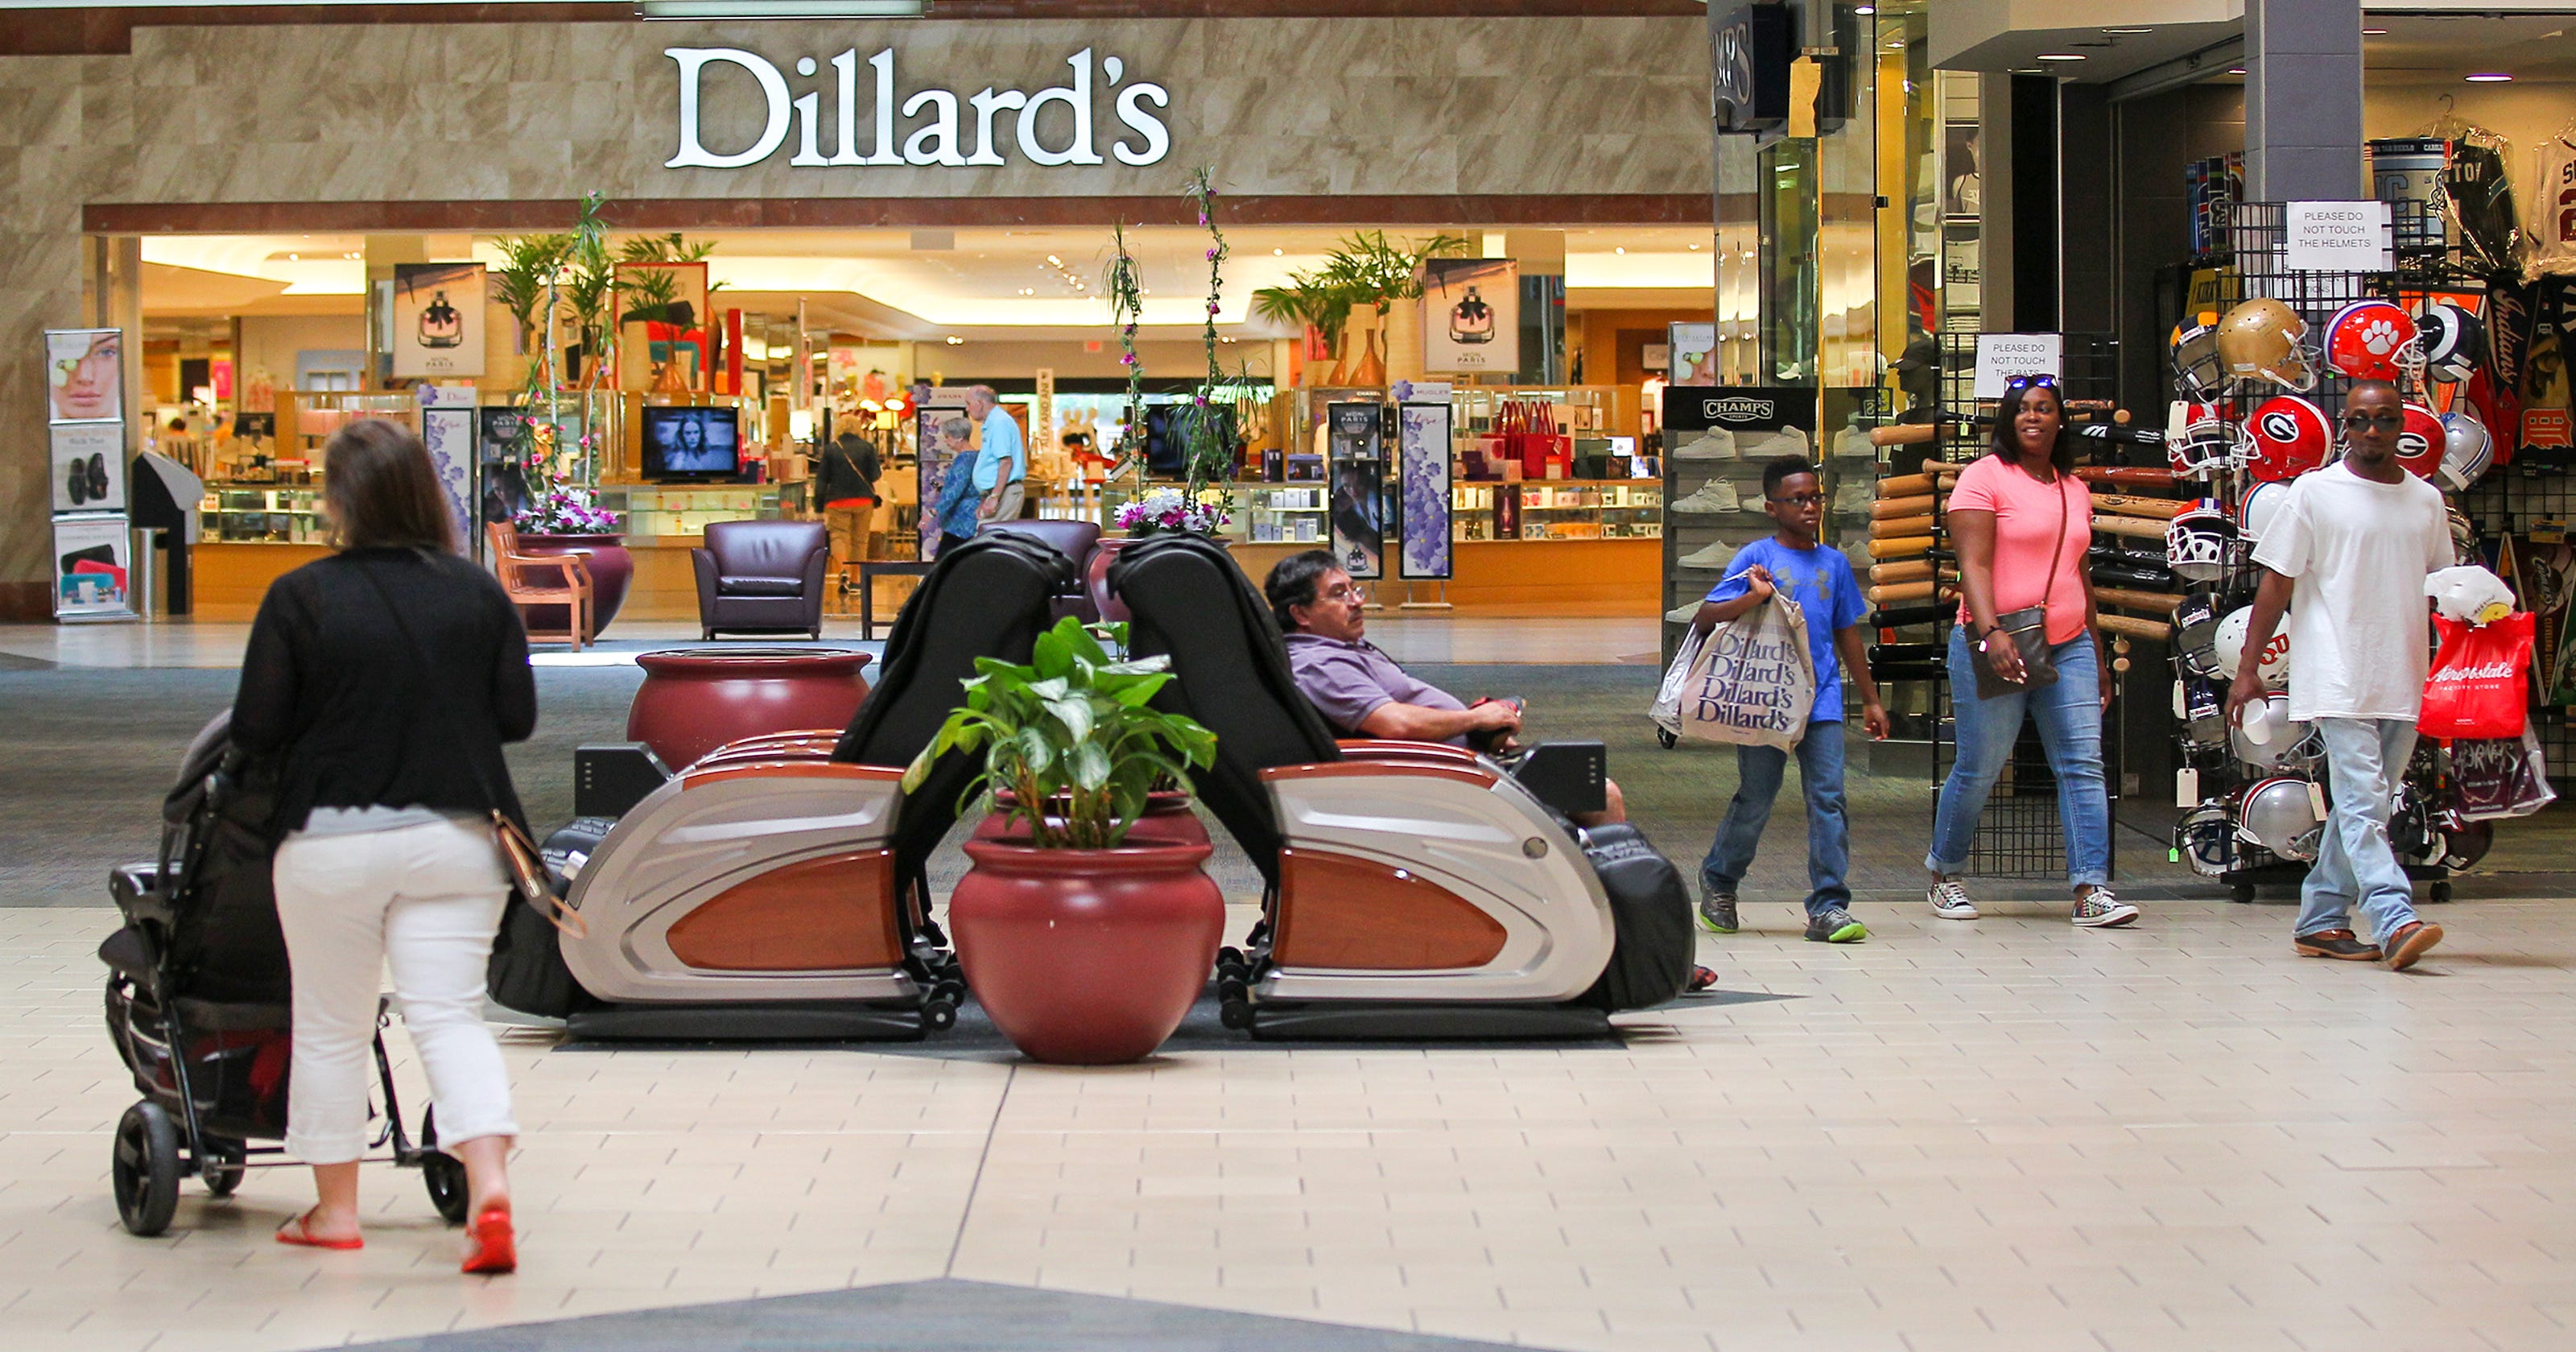 9f71afadd4 Dillard s chain might buy three Milwaukee-area Boston Store buildings